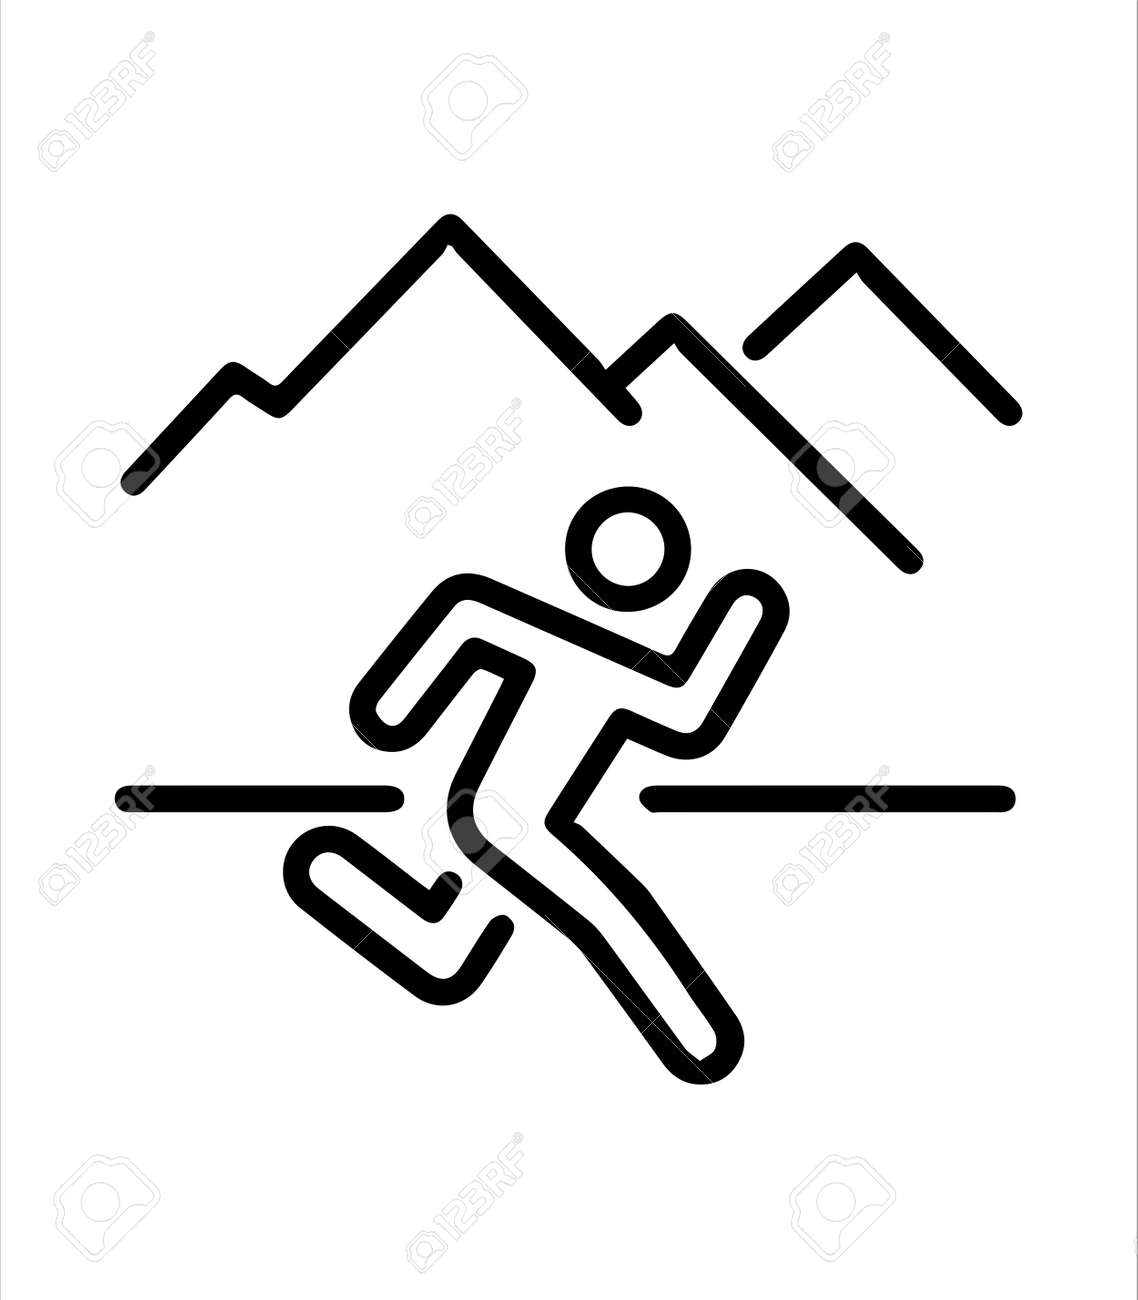 the outdoor sports running icon - 166507840